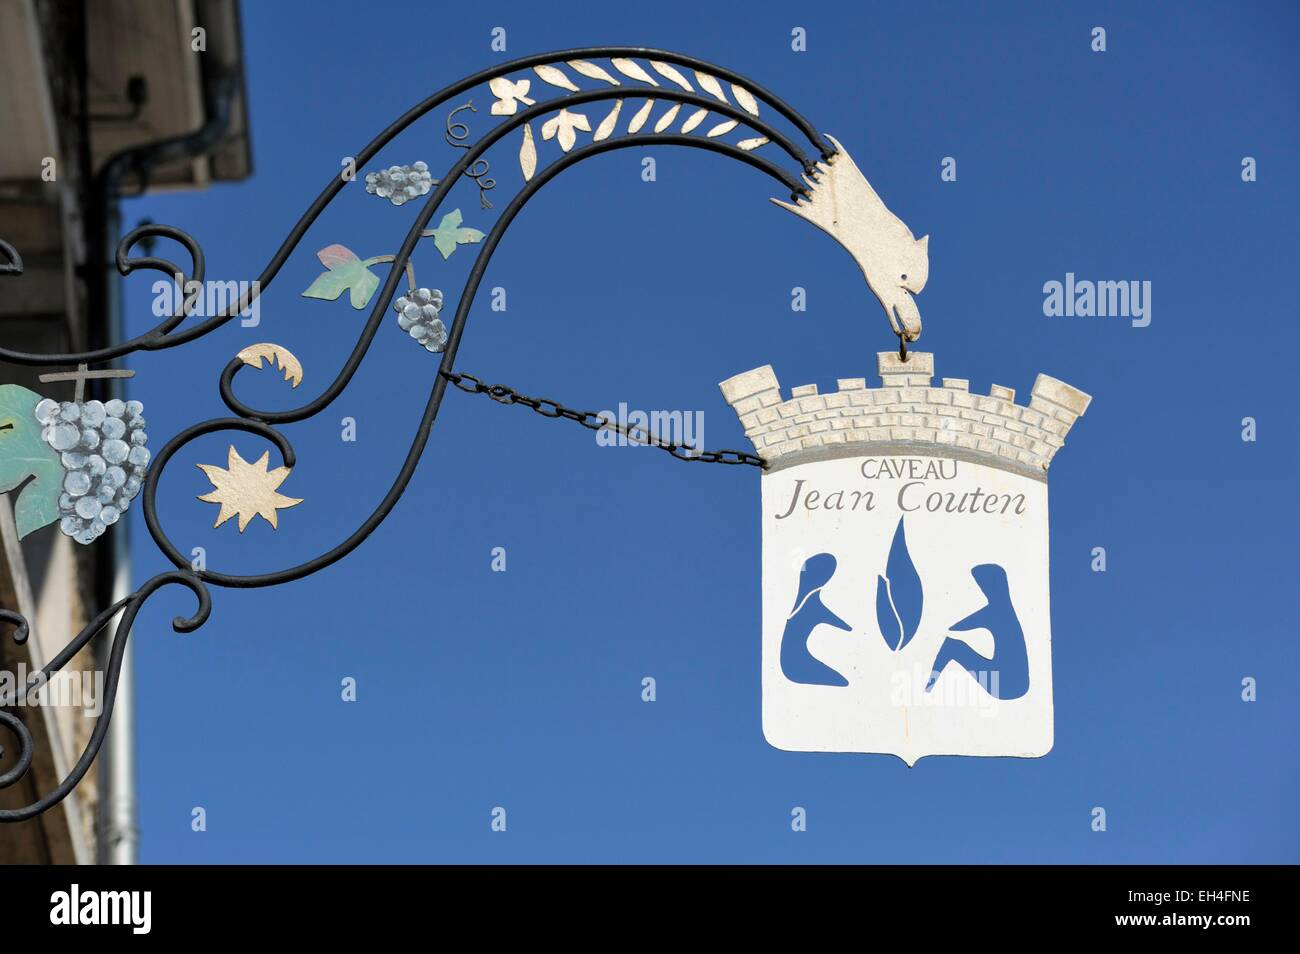 France, Marne, Hautvillers, wrought iron sign bearing the Caveau Jean Couten - Stock Image